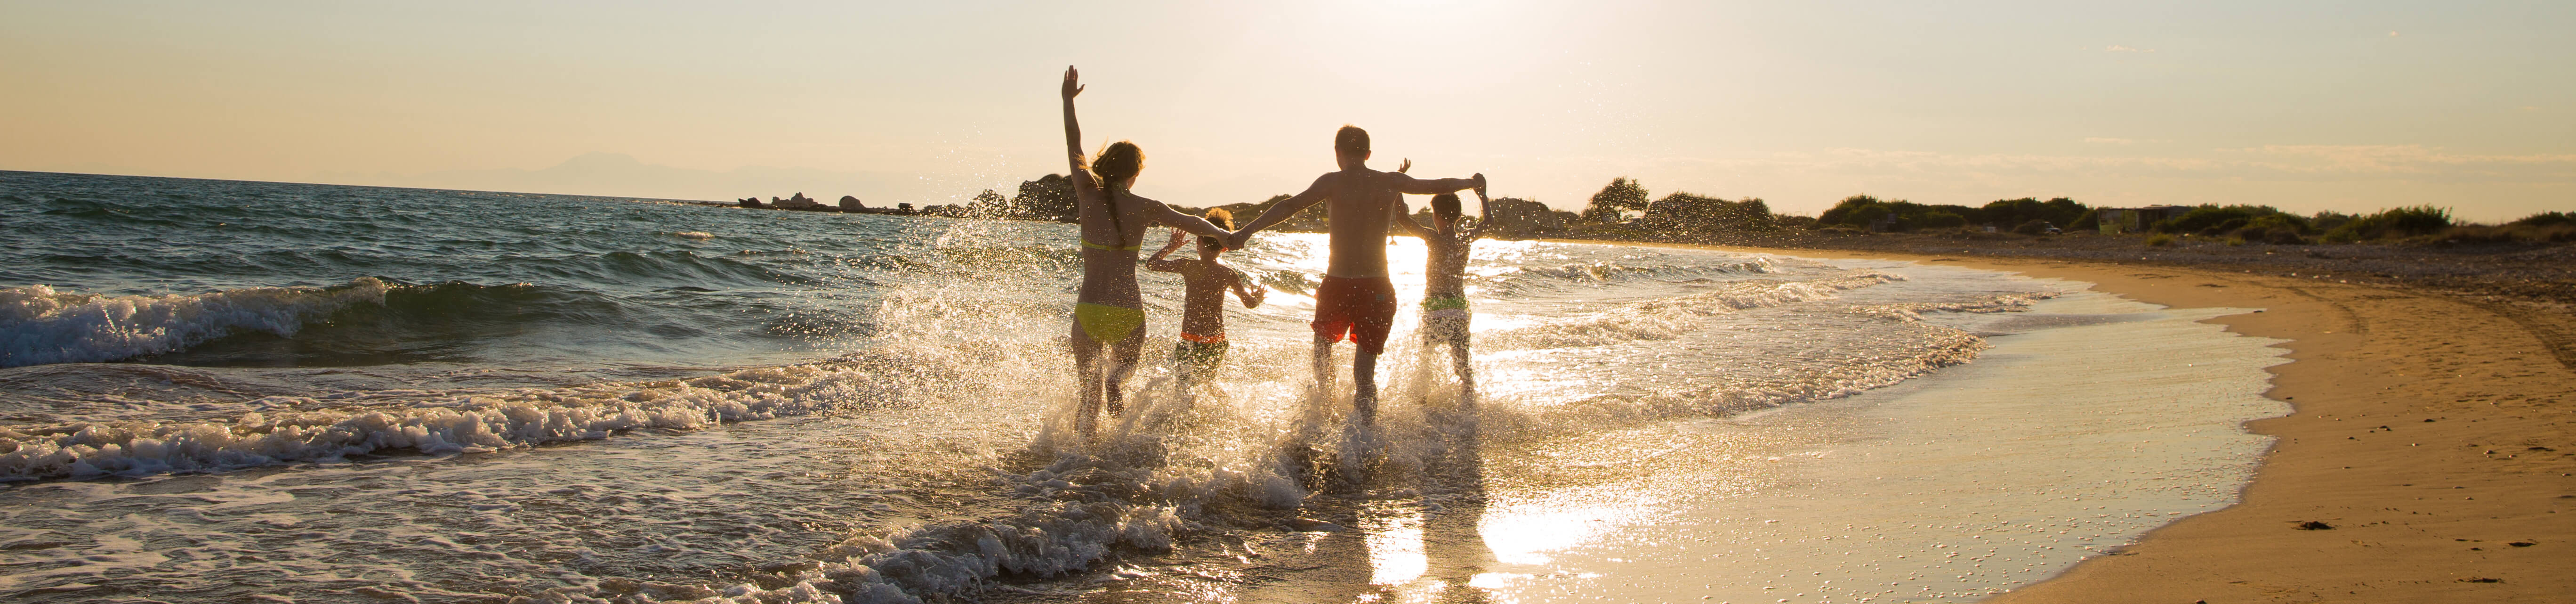 Family playing in the surf at sunset